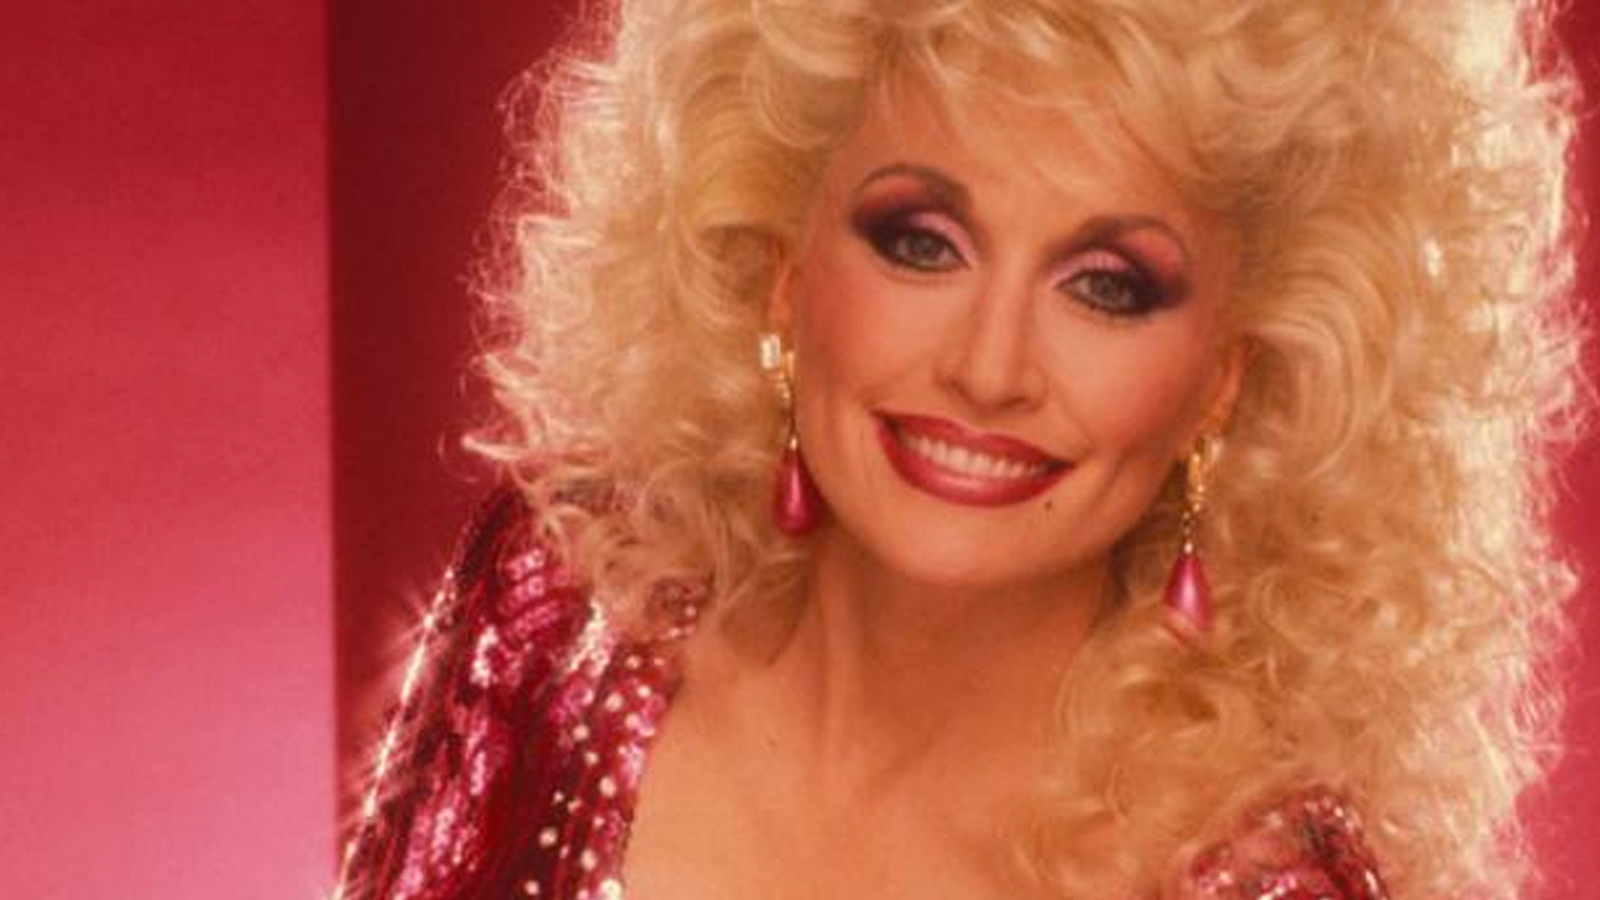 dolly parton happy birthday ; dolly_parton_best_looks_galore_mag_feature